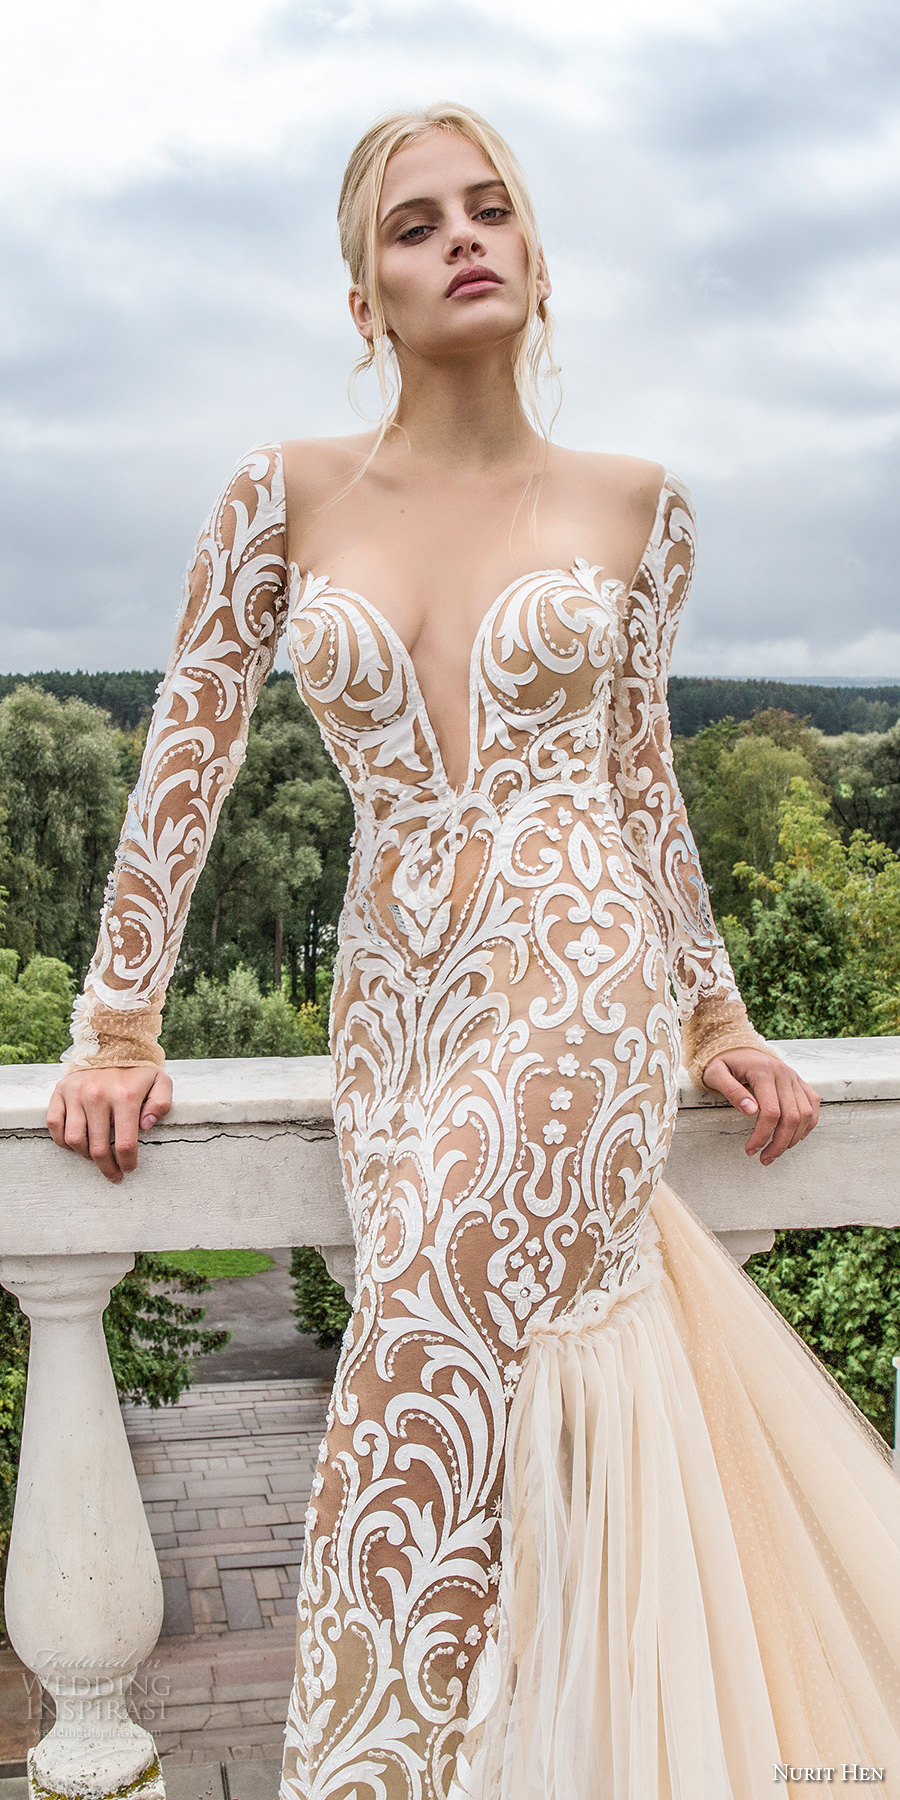 nurit hen 2017 bridal long sleeves deep plunging sweetheart neckline full embellishment galmorous sexy ivory color sheath wedding dress open back chapel train (8) zv mv